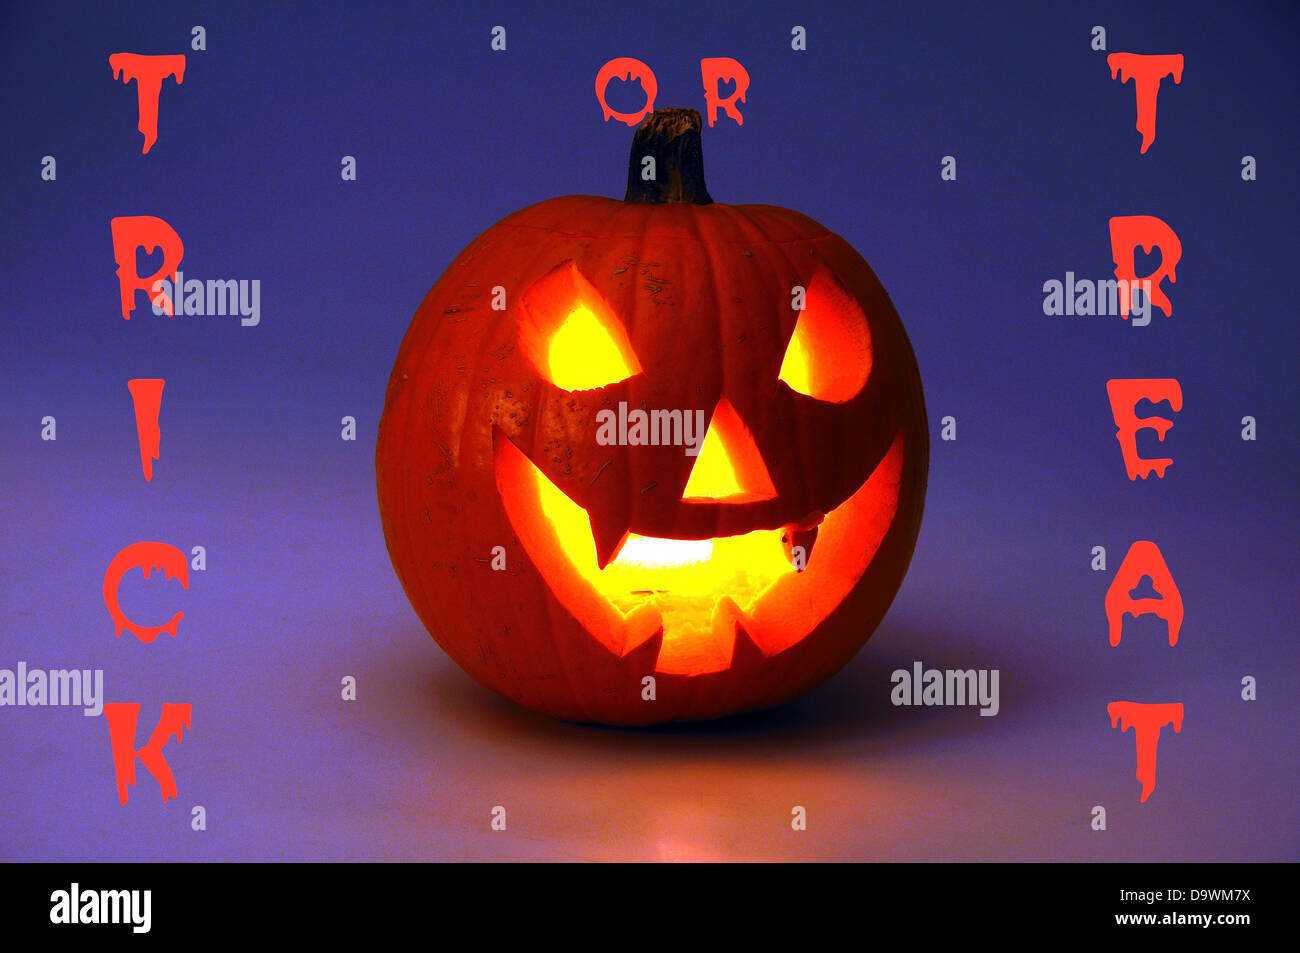 halloween scary writing stock photos halloween scary writing scary halloween pumpkin lit candlelight trick or treat writing on the background